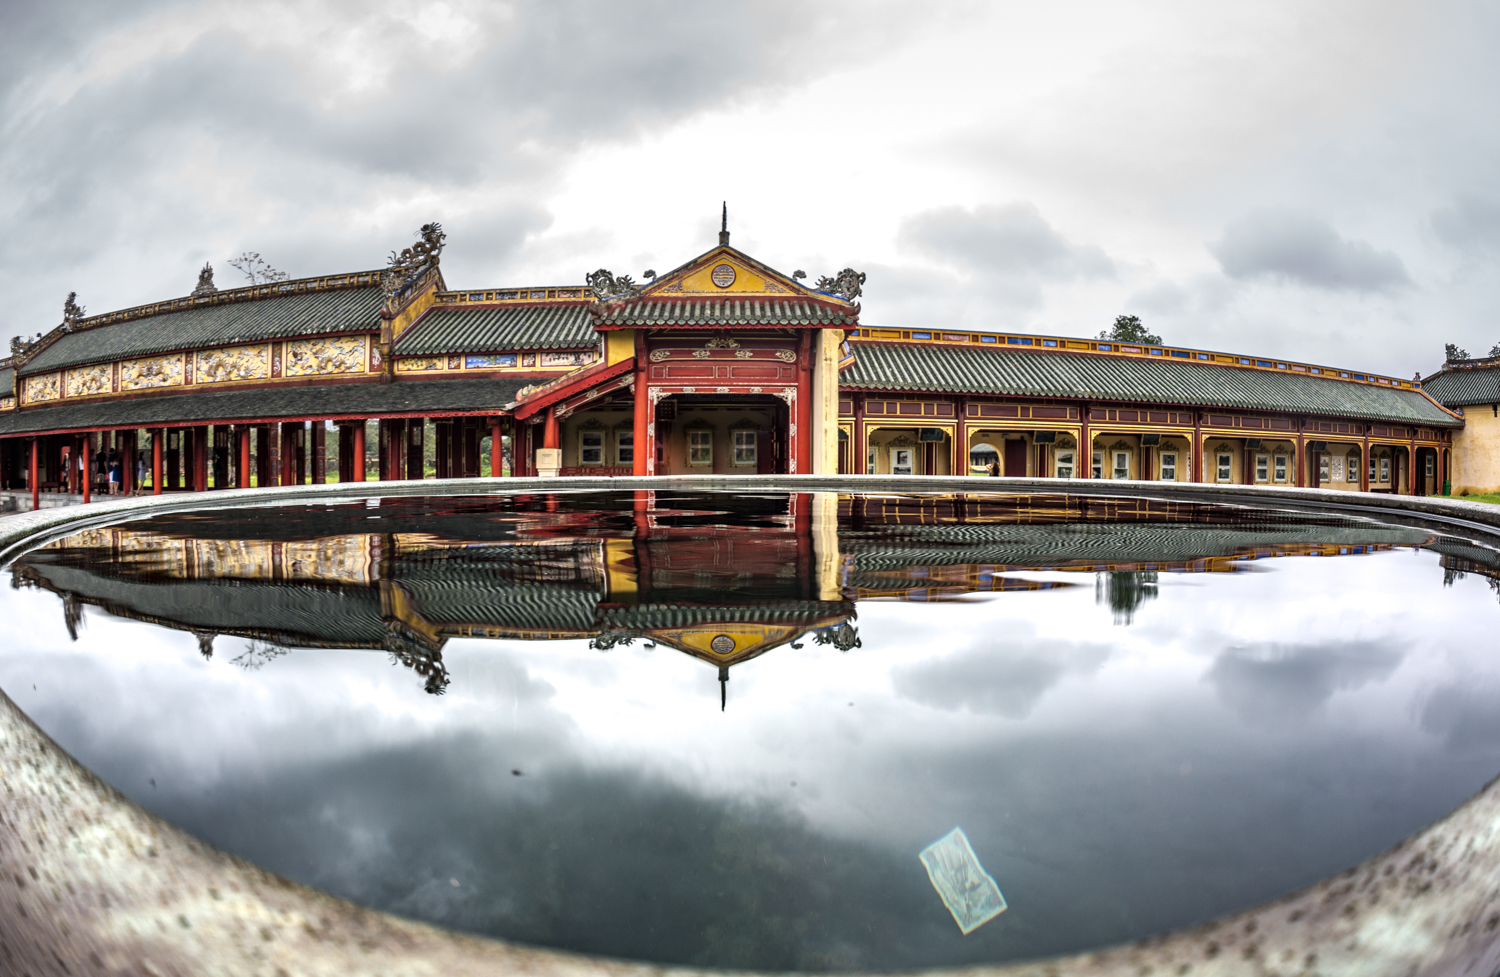 Imperial Citadel in Hue, the national capital from 1802-1945 under the Nguyen Dynasty. Sections of the citadel were damaged during the Vietnam war. Visitors deposit cash into the water basins for good luck.